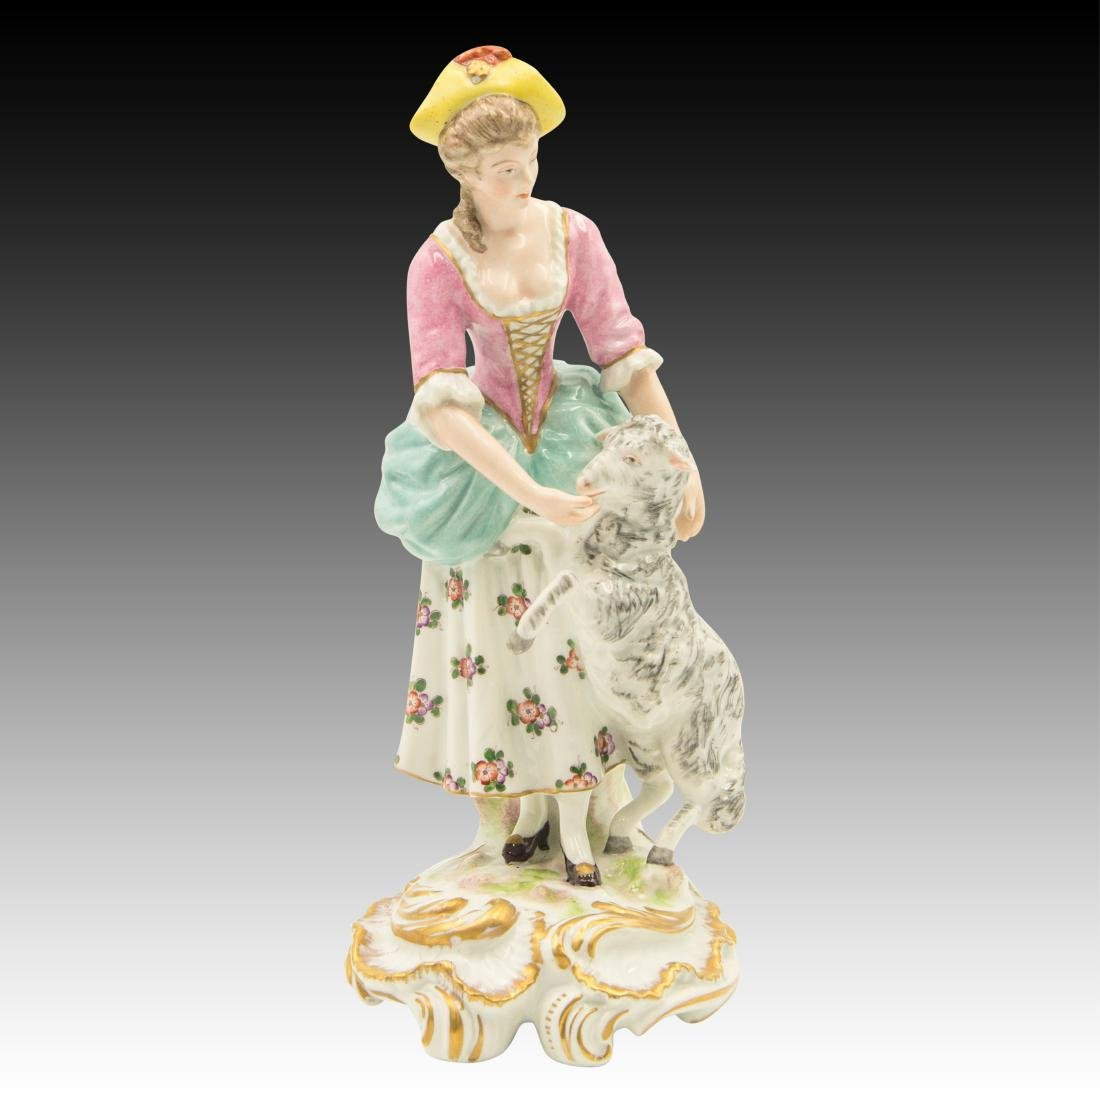 Kalk Porcelain Woman Playing with Lamb Figurine